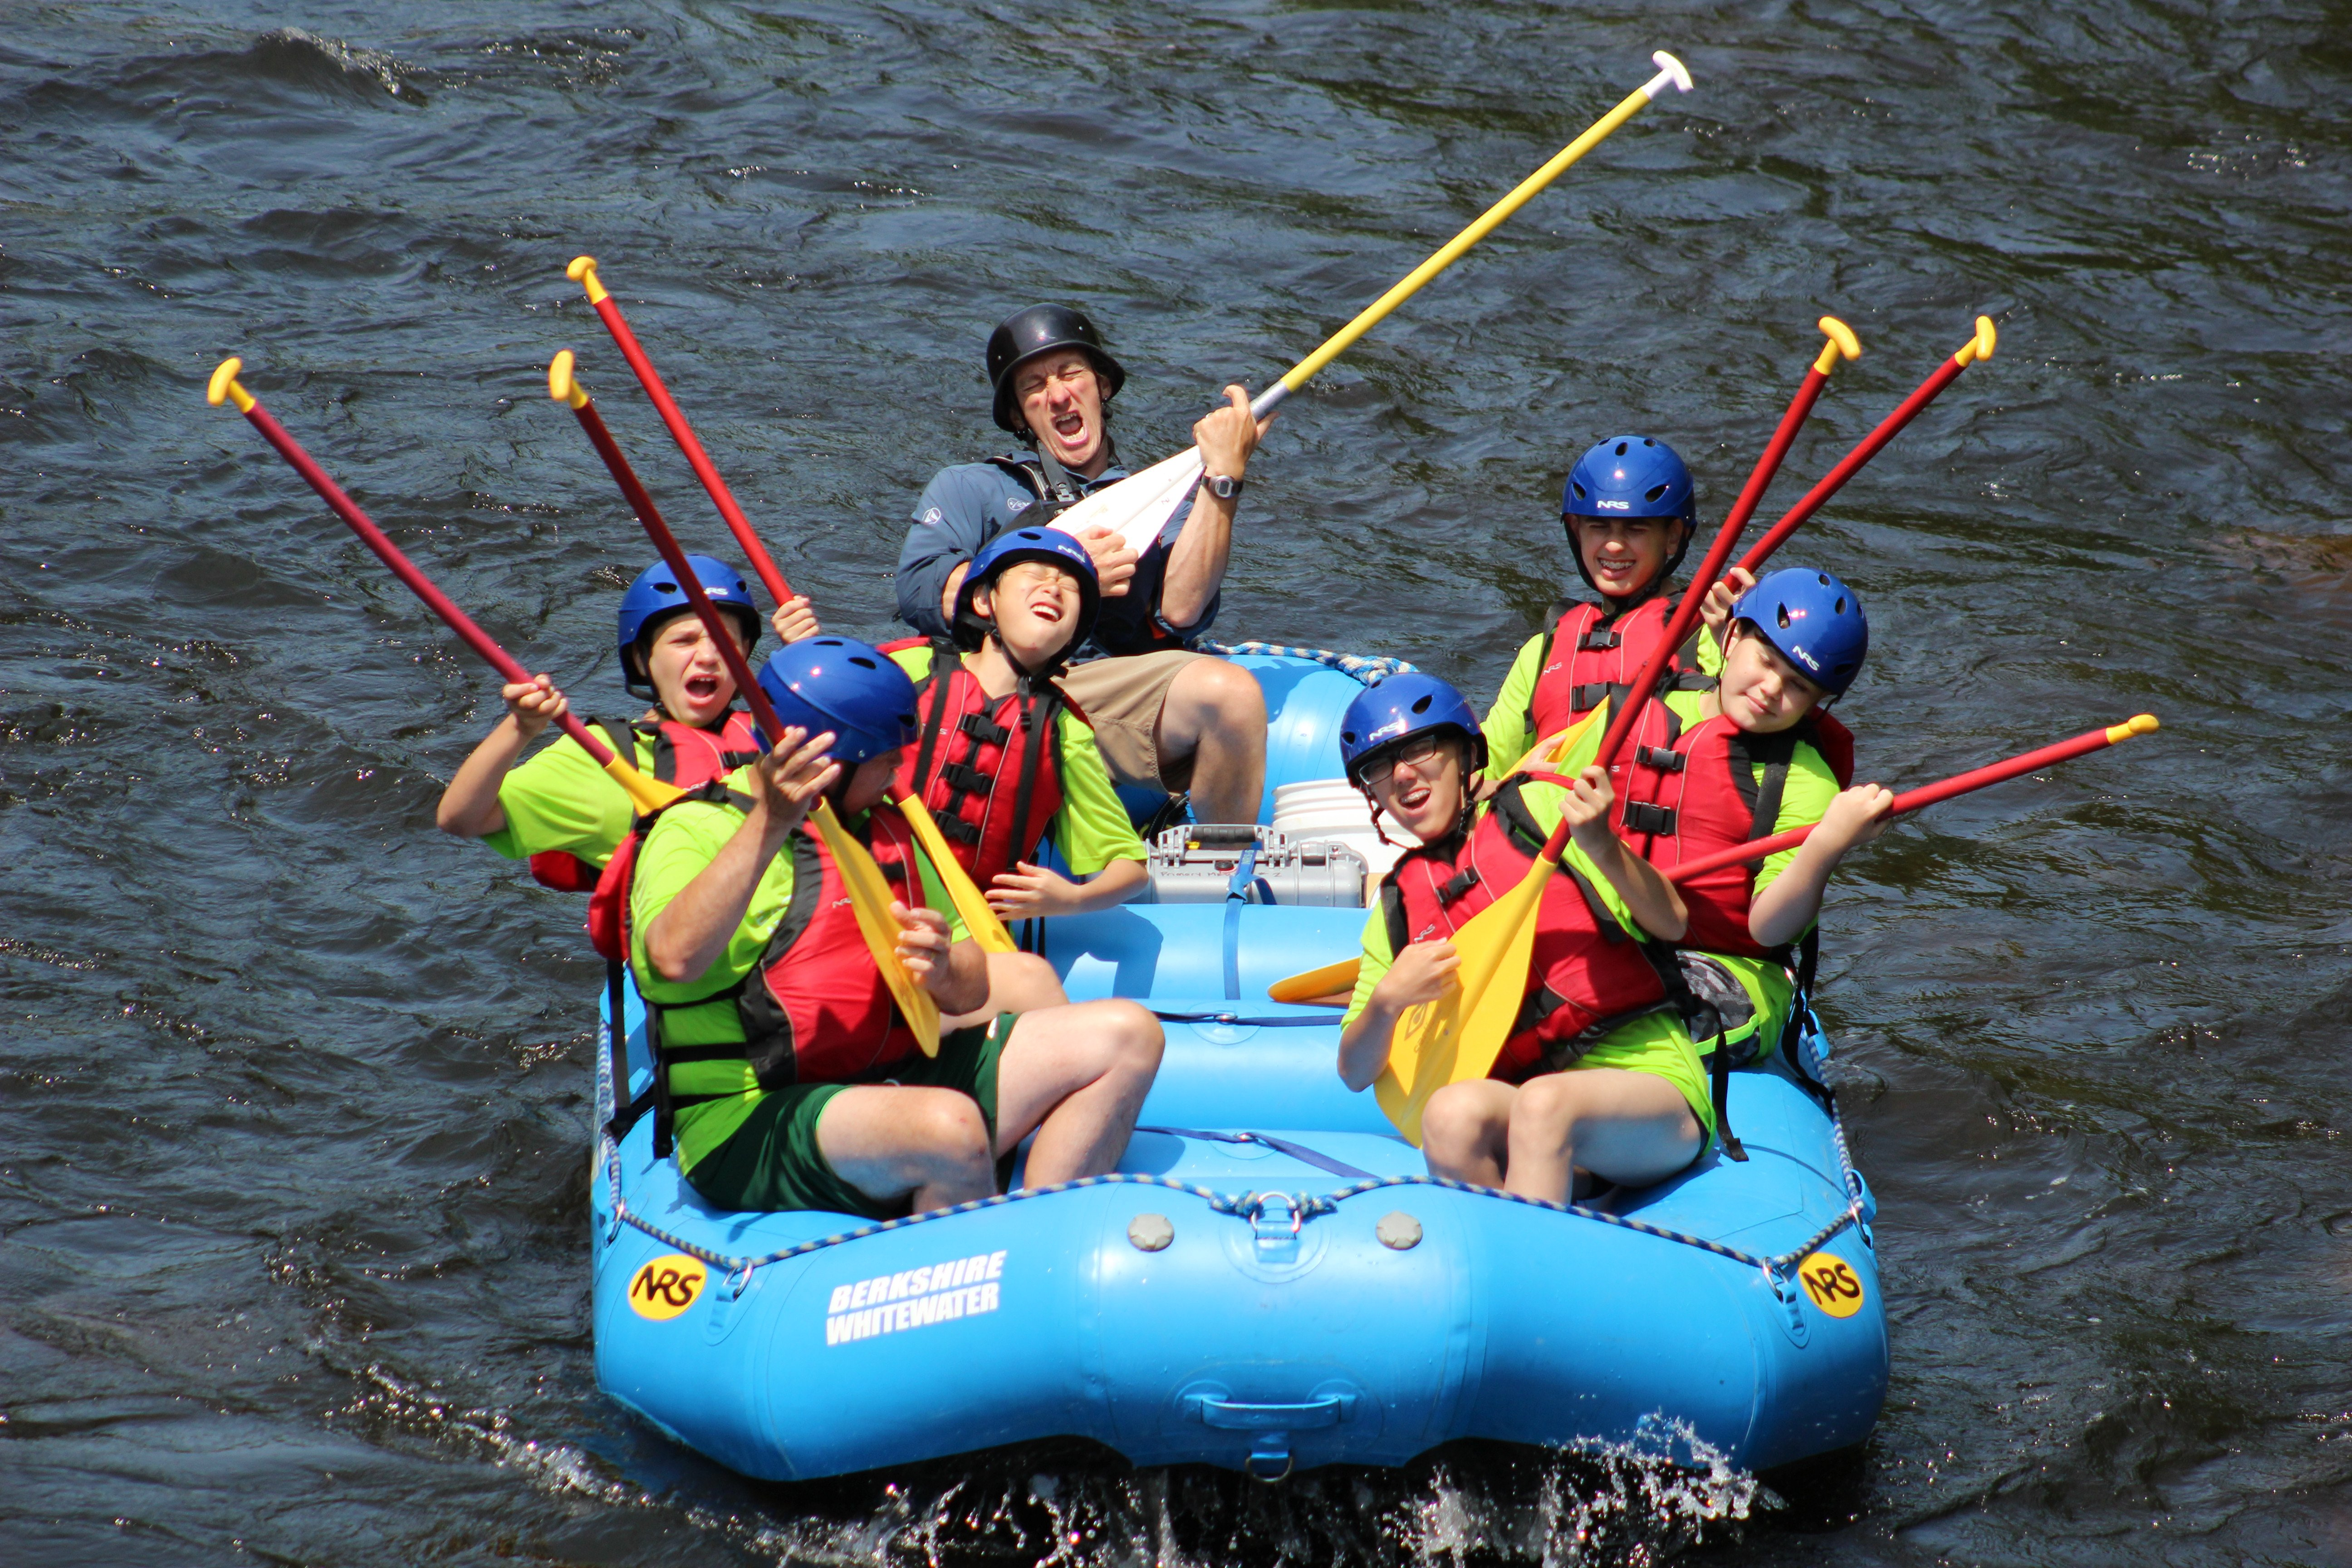 Music + Rafting? Don't rock the boat, but you can rock out on the boat.